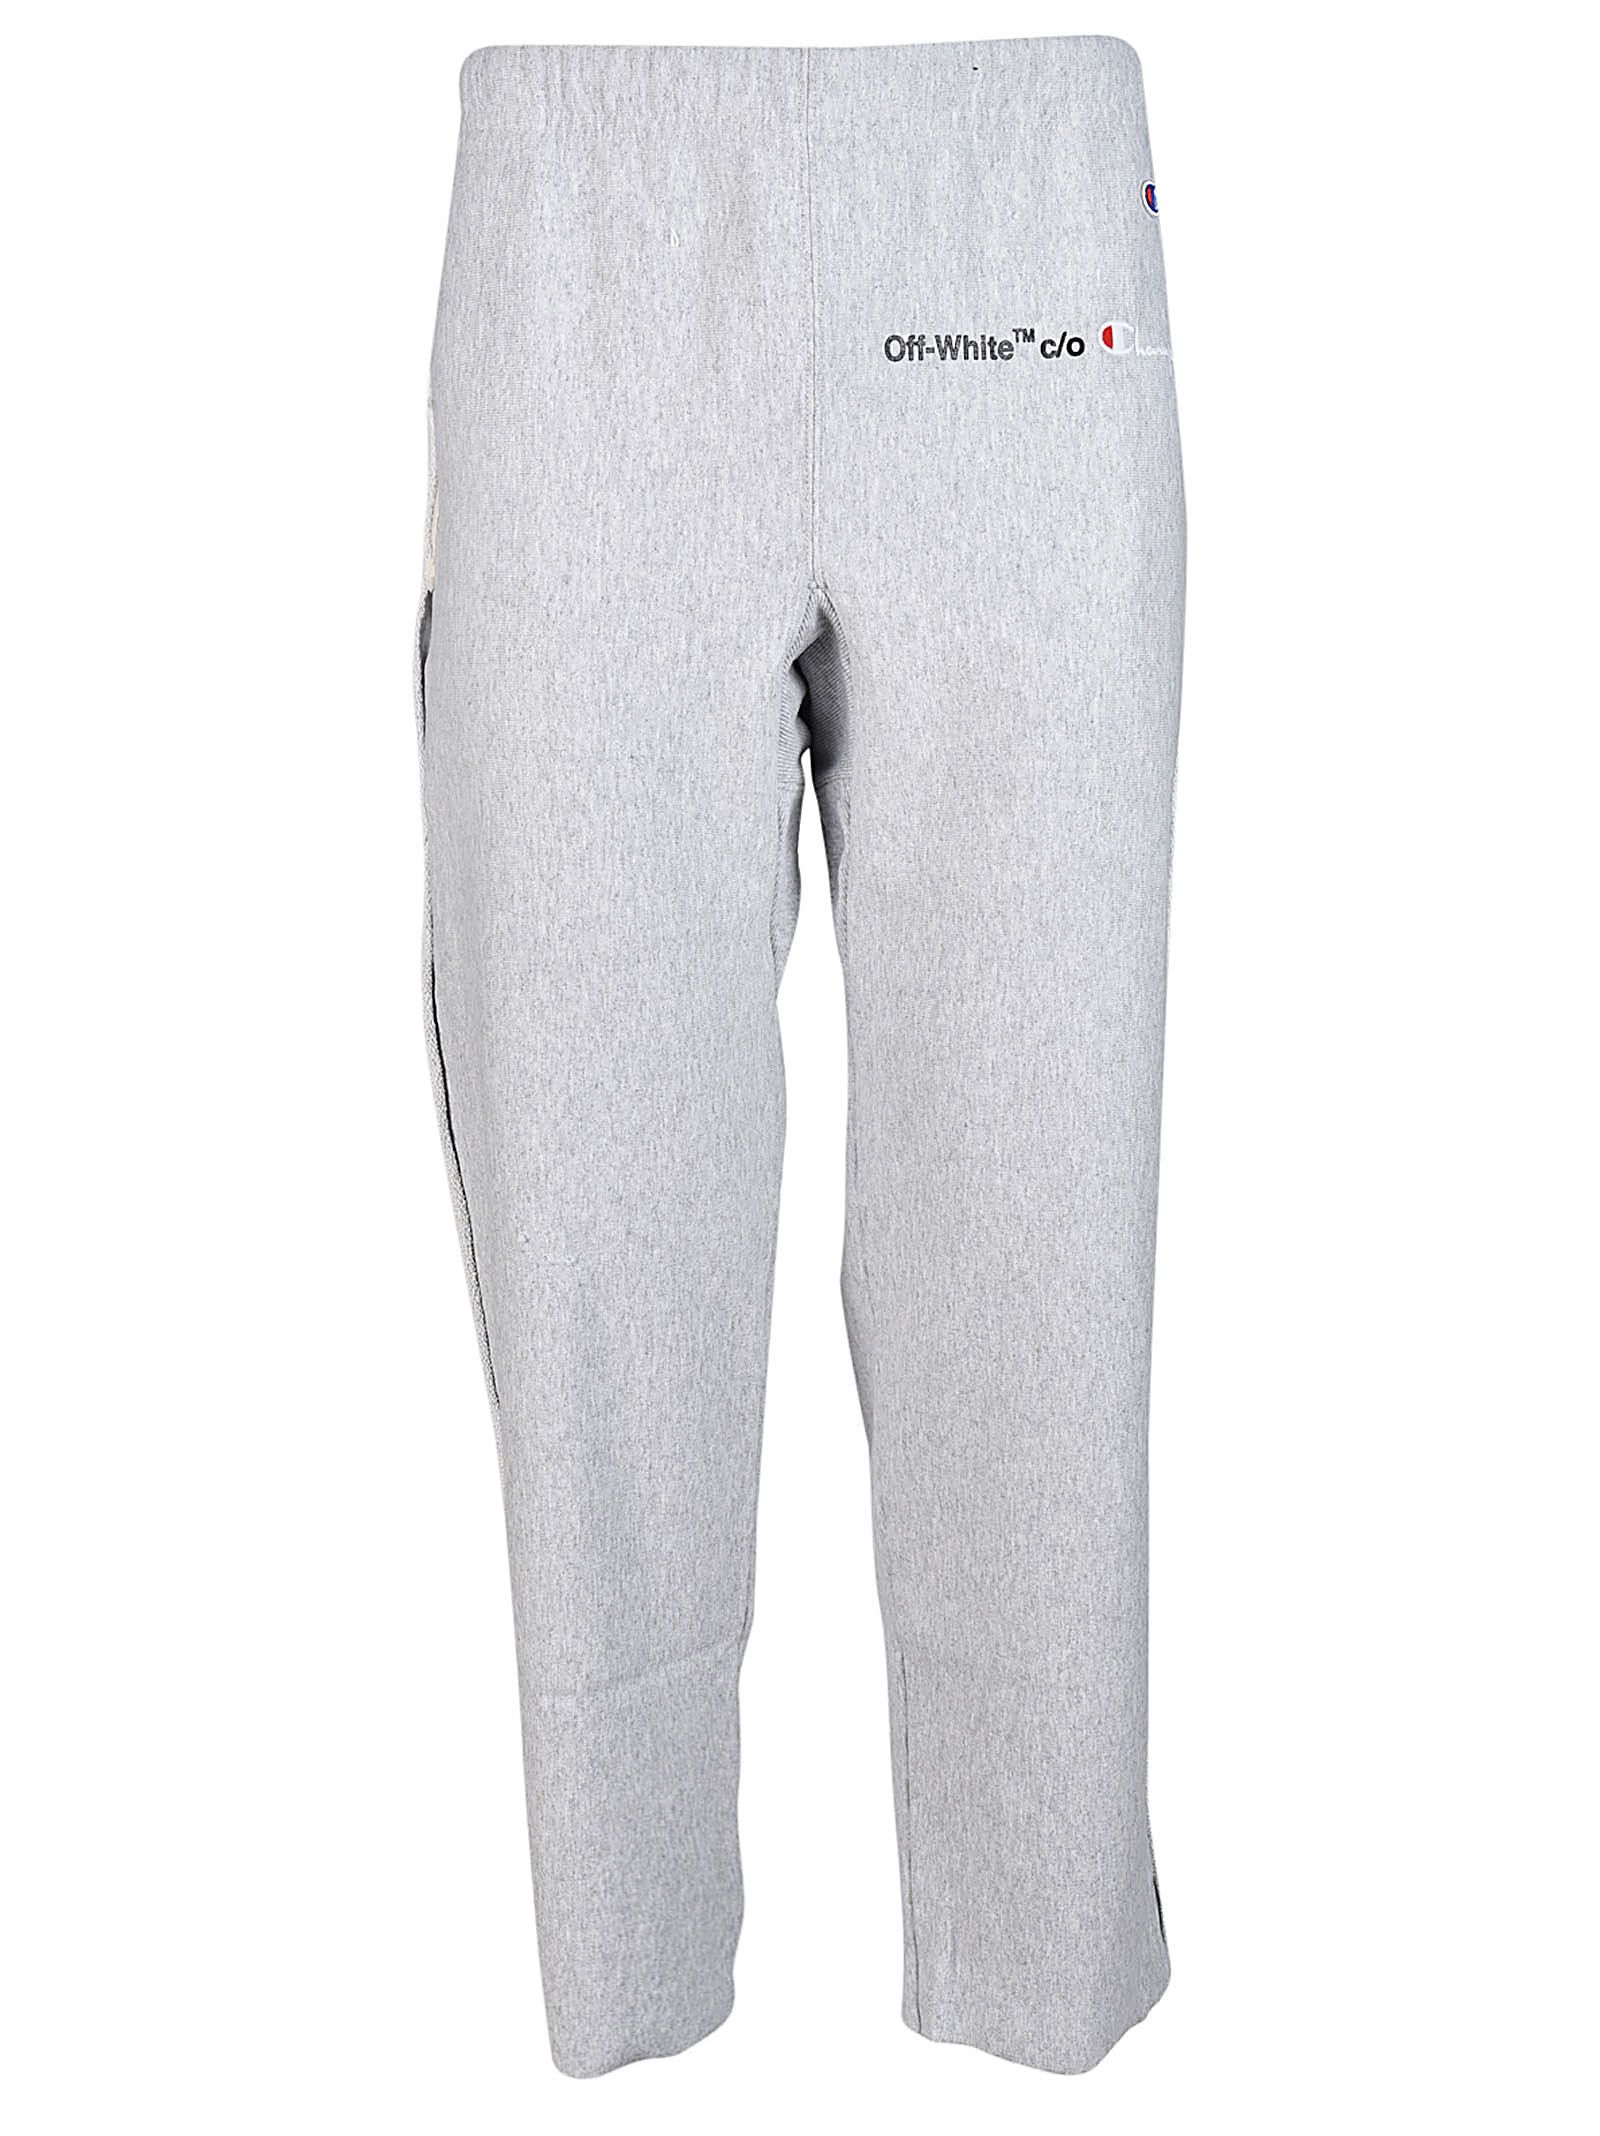 Off-white Champion Track Pants